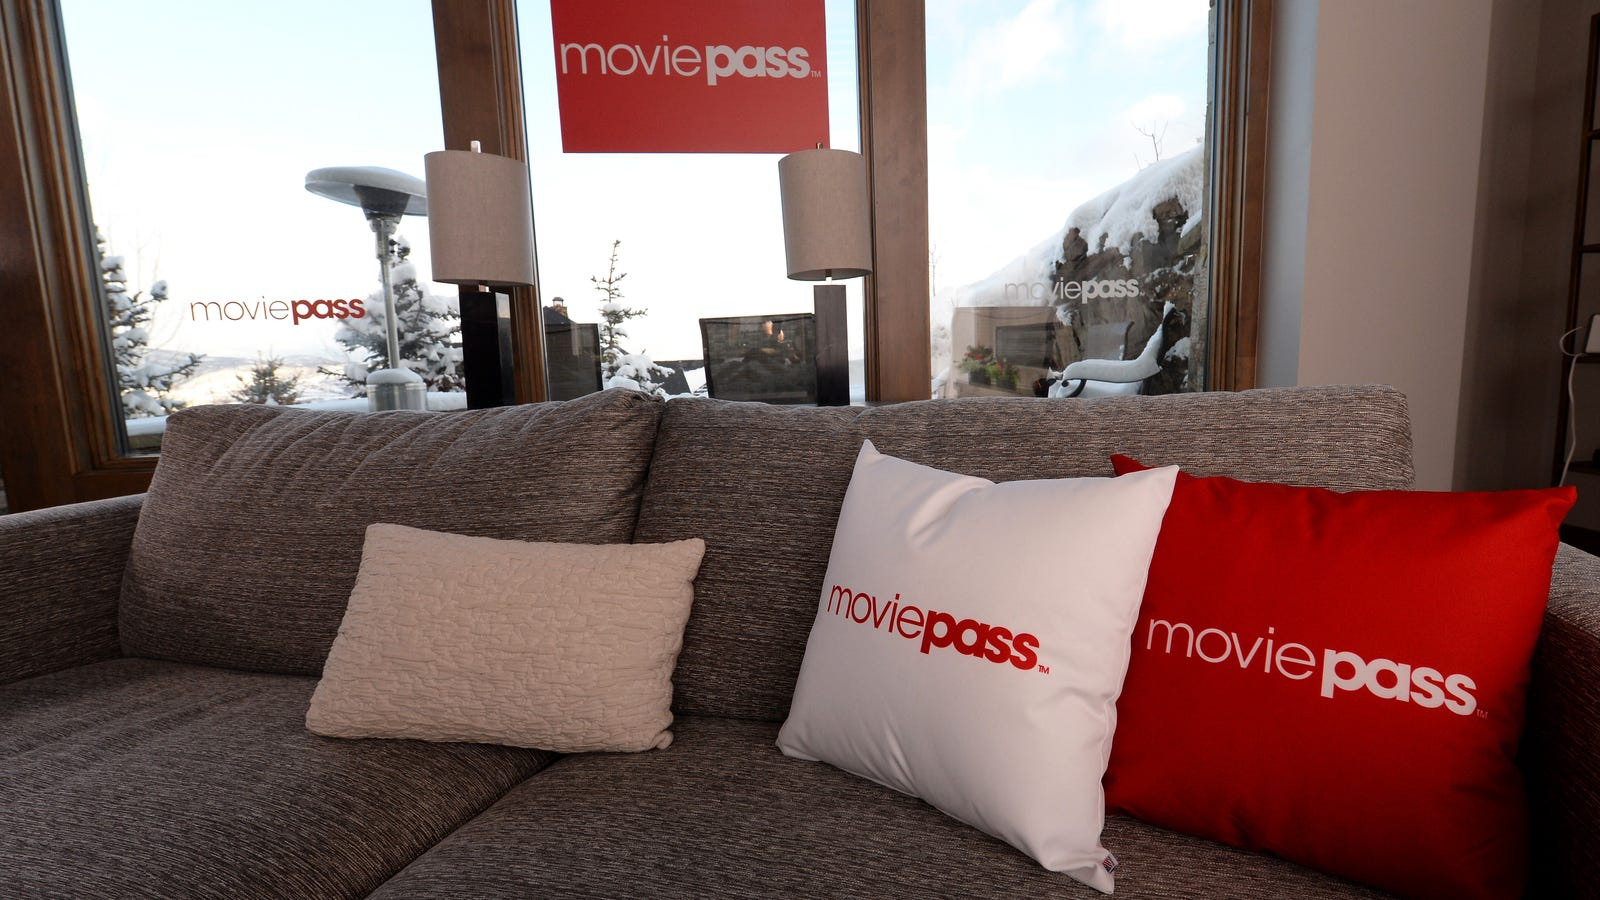 MoviePass, desperate to get back together, is bringing back the unlimited plan